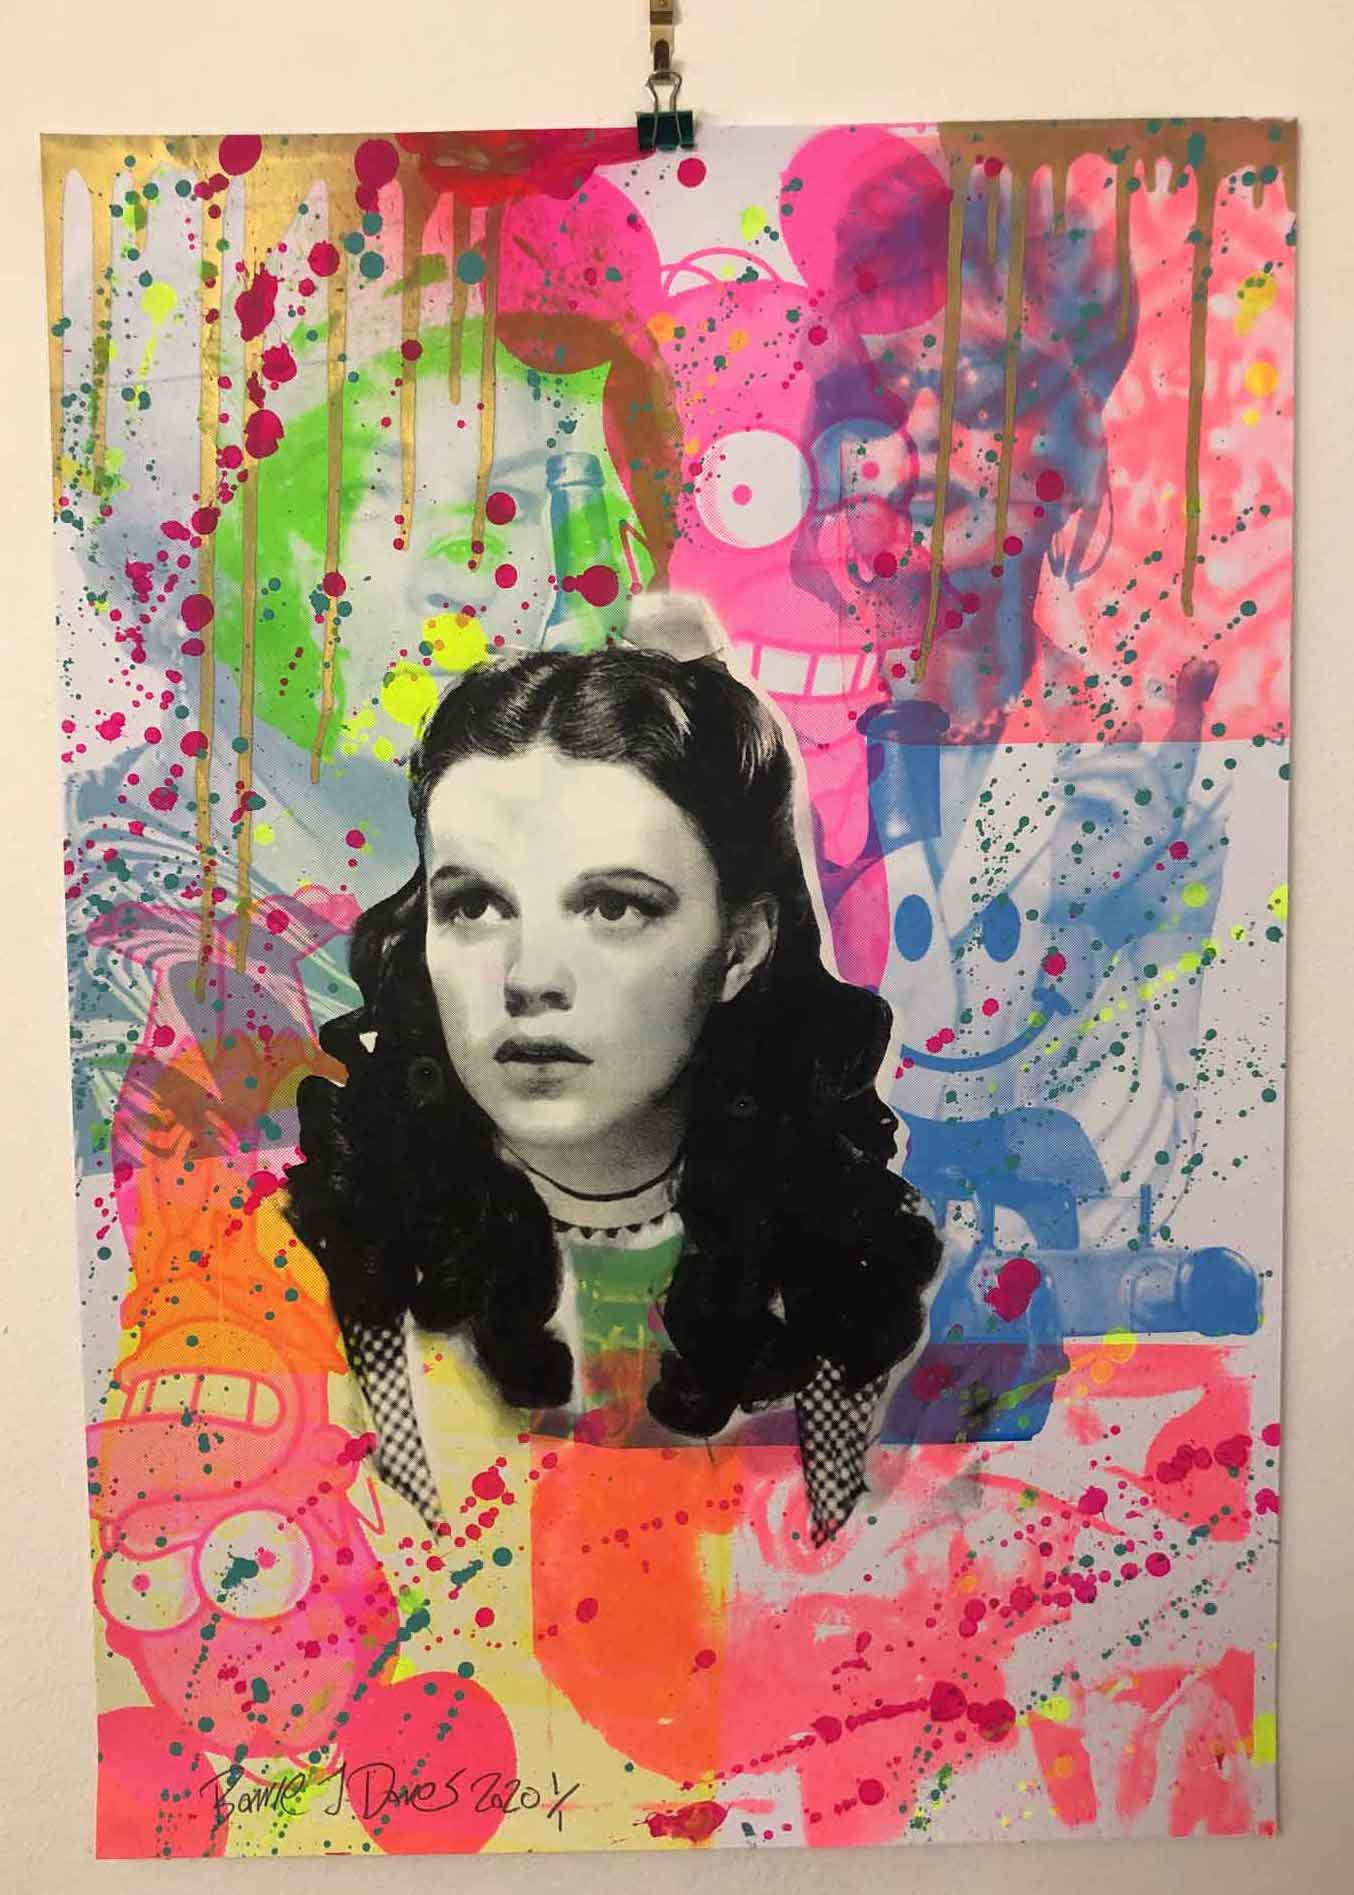 Rainbow Mash Up Print by Barrie J Davies 2020 - unframed Silkscreen print on paper (hand finished) edition of 1/1 - A2 size 42cm x 59.4cm. Urban Pop Art and Street art inspired Artist based in Brighton England UK - Pop Art Paintings, Street Art Prints & collectables.